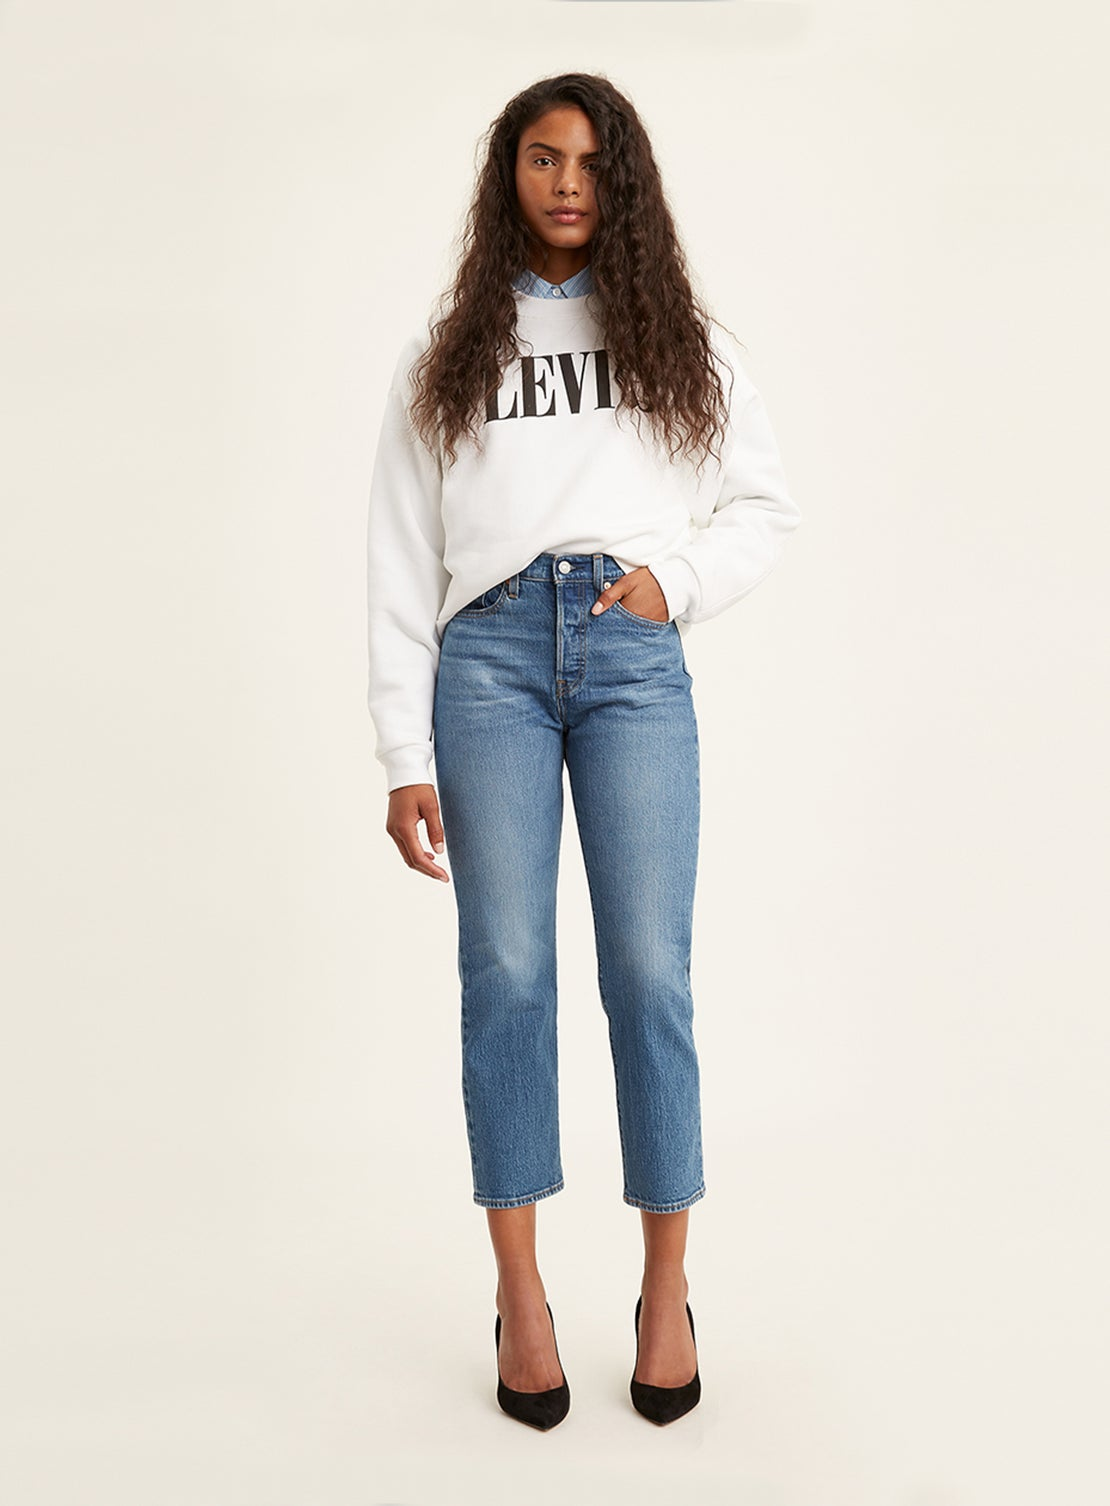 Levi's Wedgie Fit Straight Jeans - Jive Sound